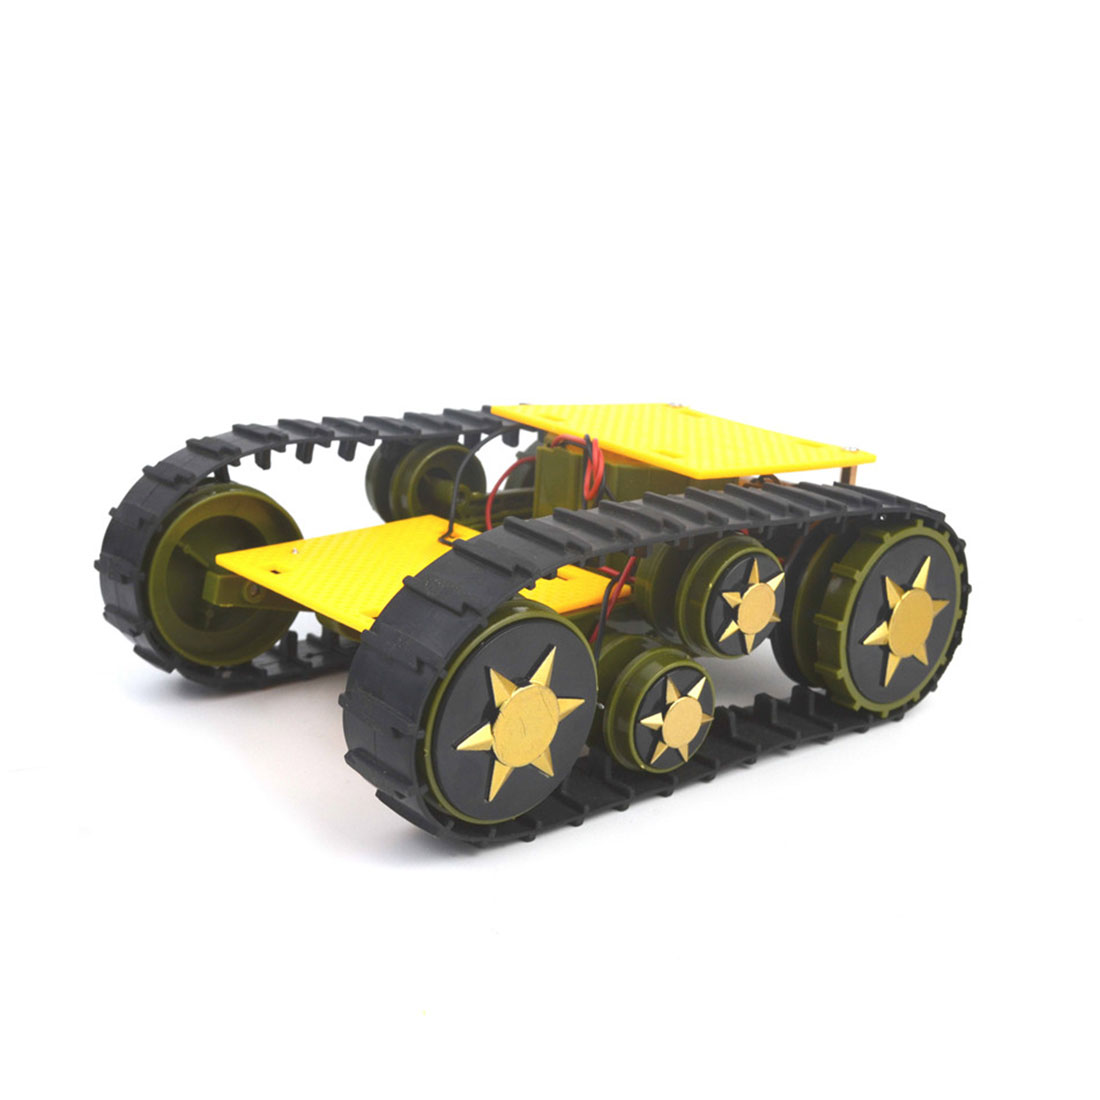 DIY Deformation Smart Tank Robot Crawler Caterpillar Vehicle Platform For Arduino SN1900 Kids Birthdaty Gifts